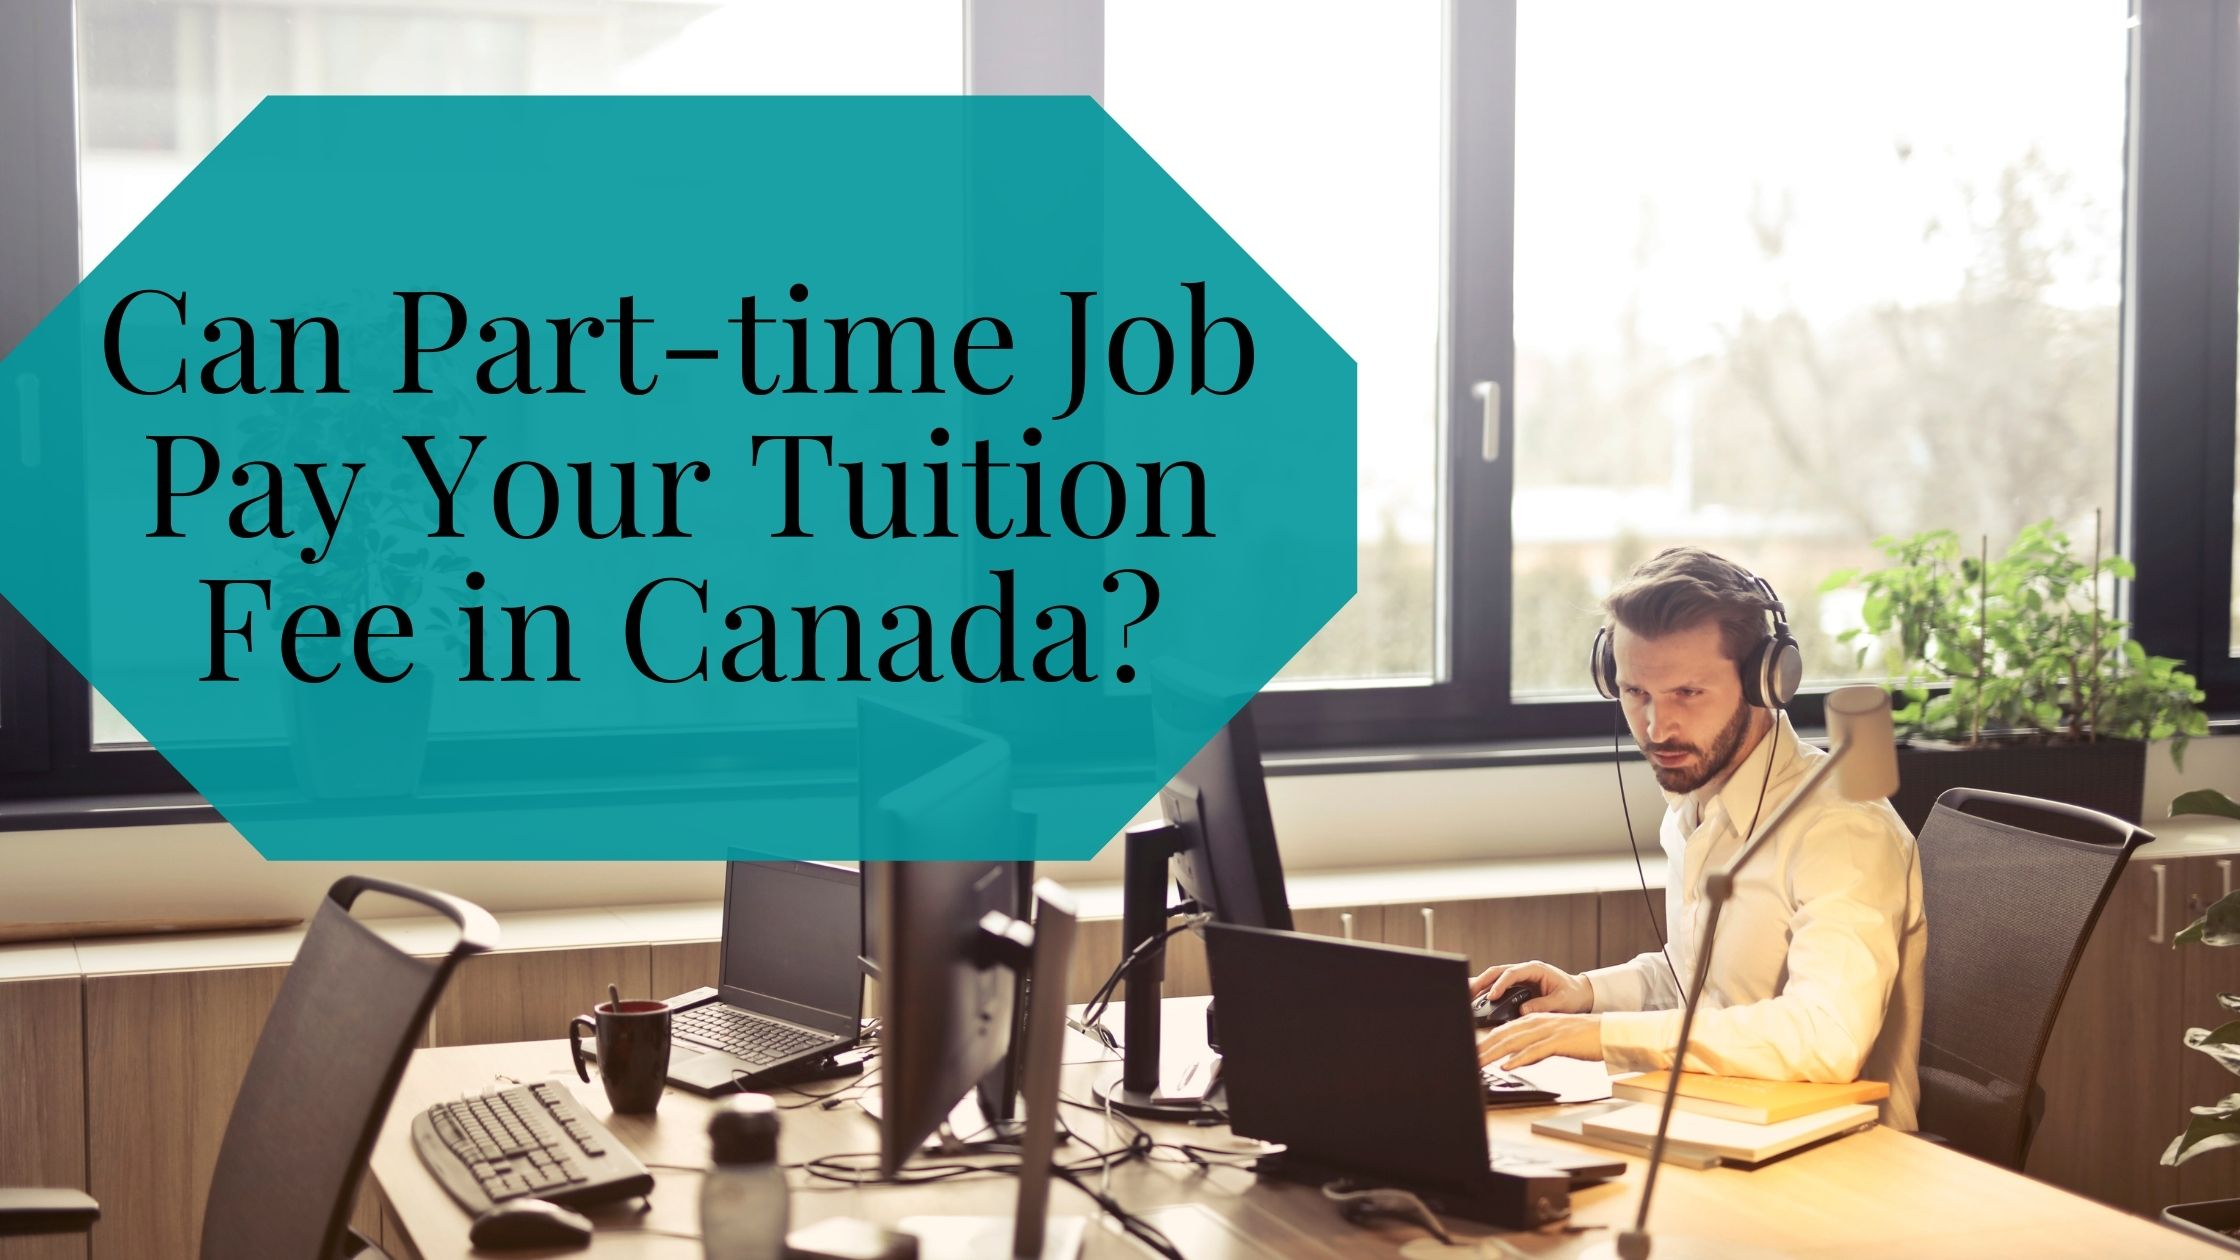 Can Part-time Job Pay Your Tuition Fee in Canada?